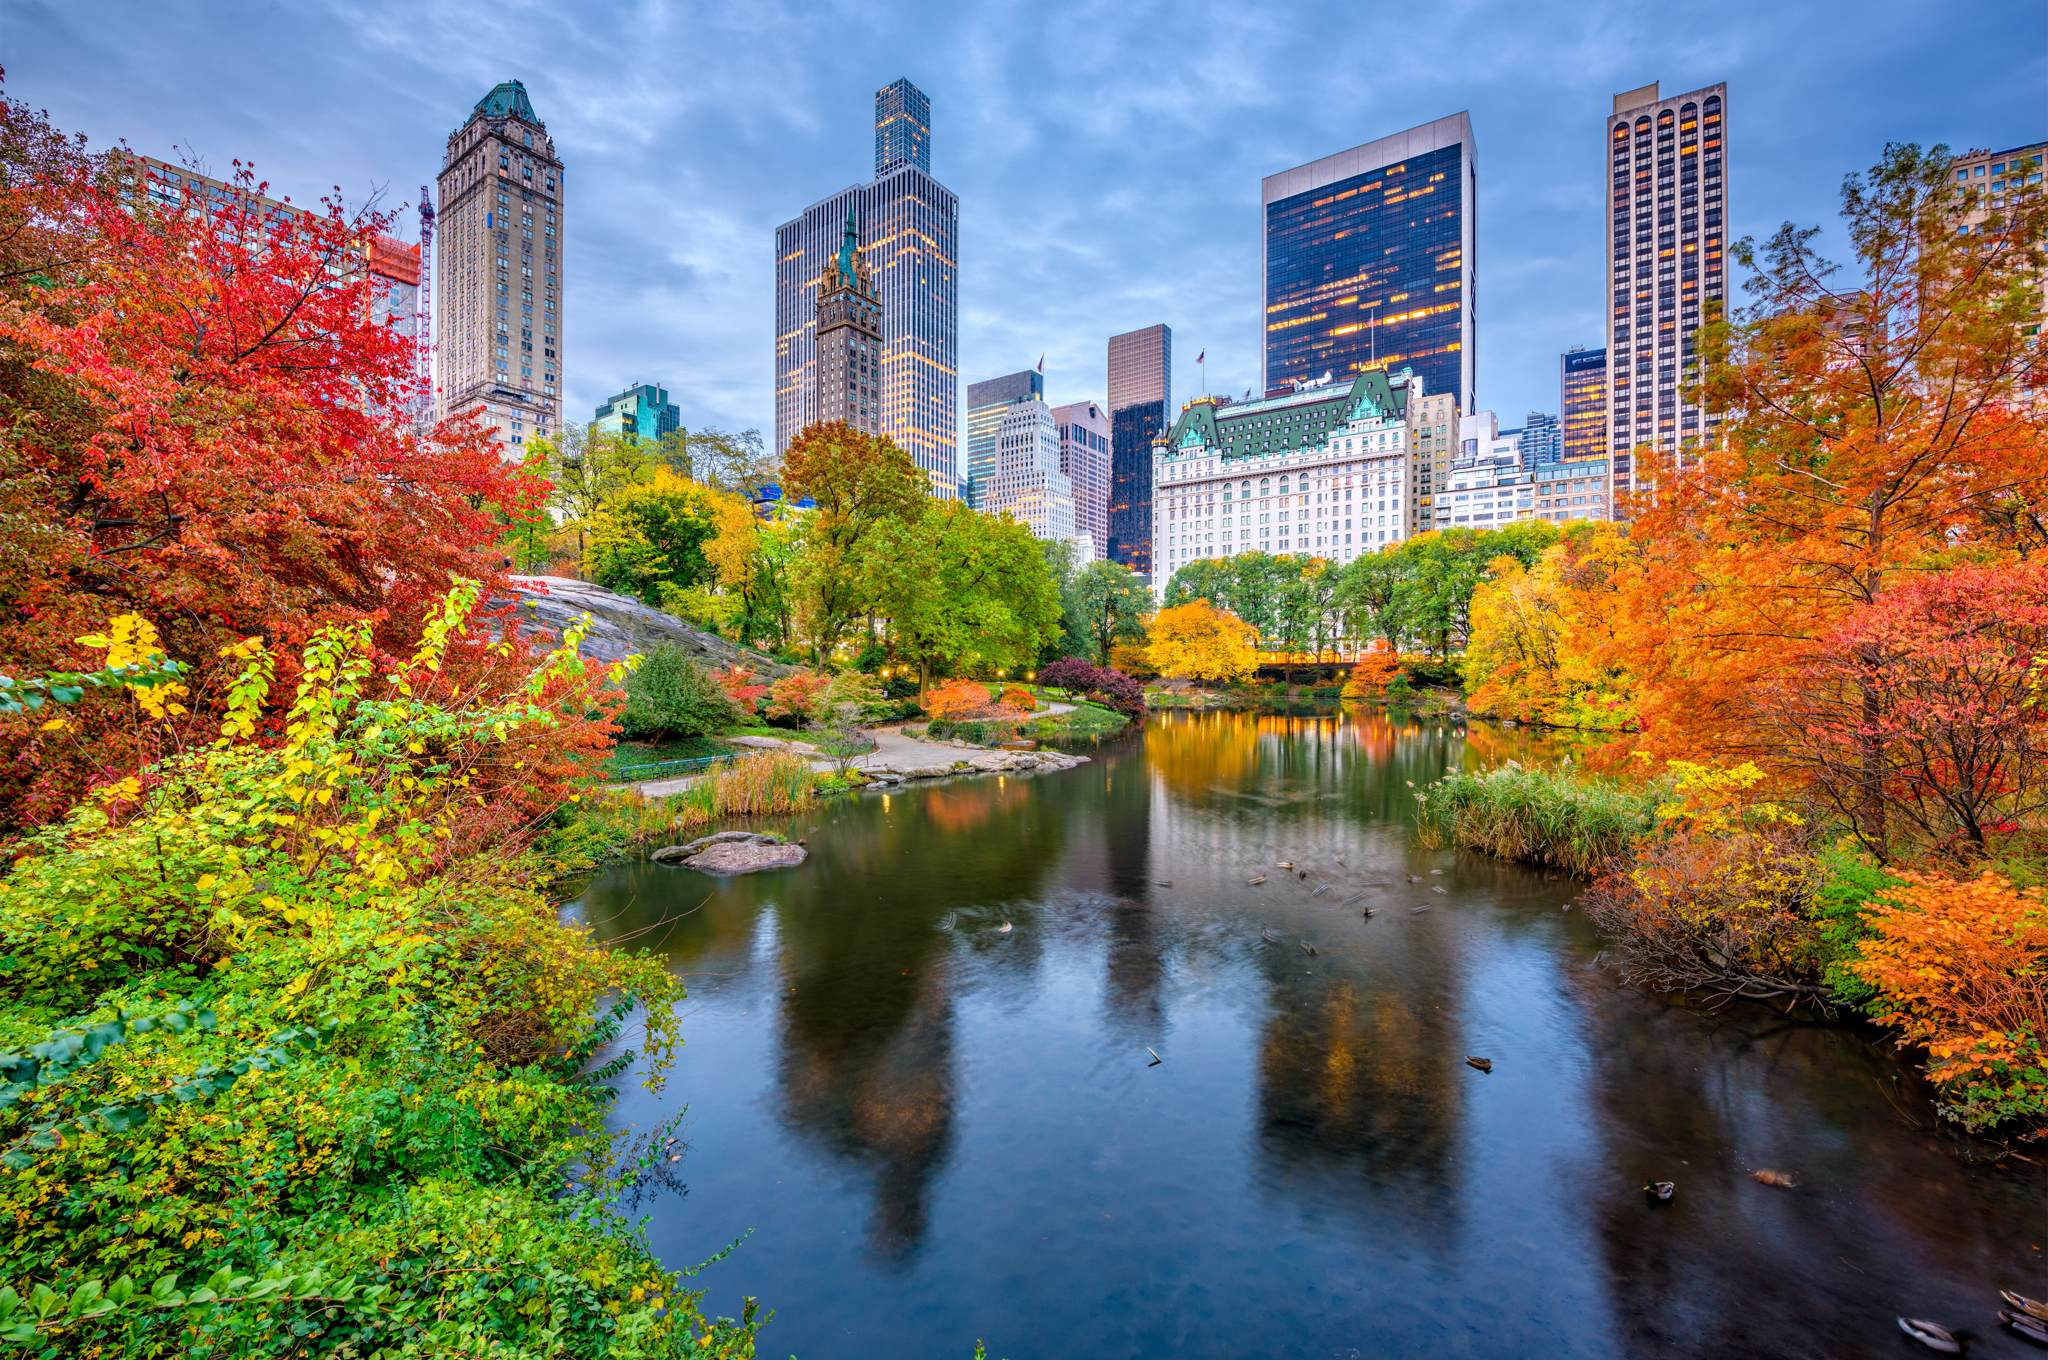 Im Herbst in New York - shu-USA-New York-Der Central Park im Herbst-711159205-2048x1360